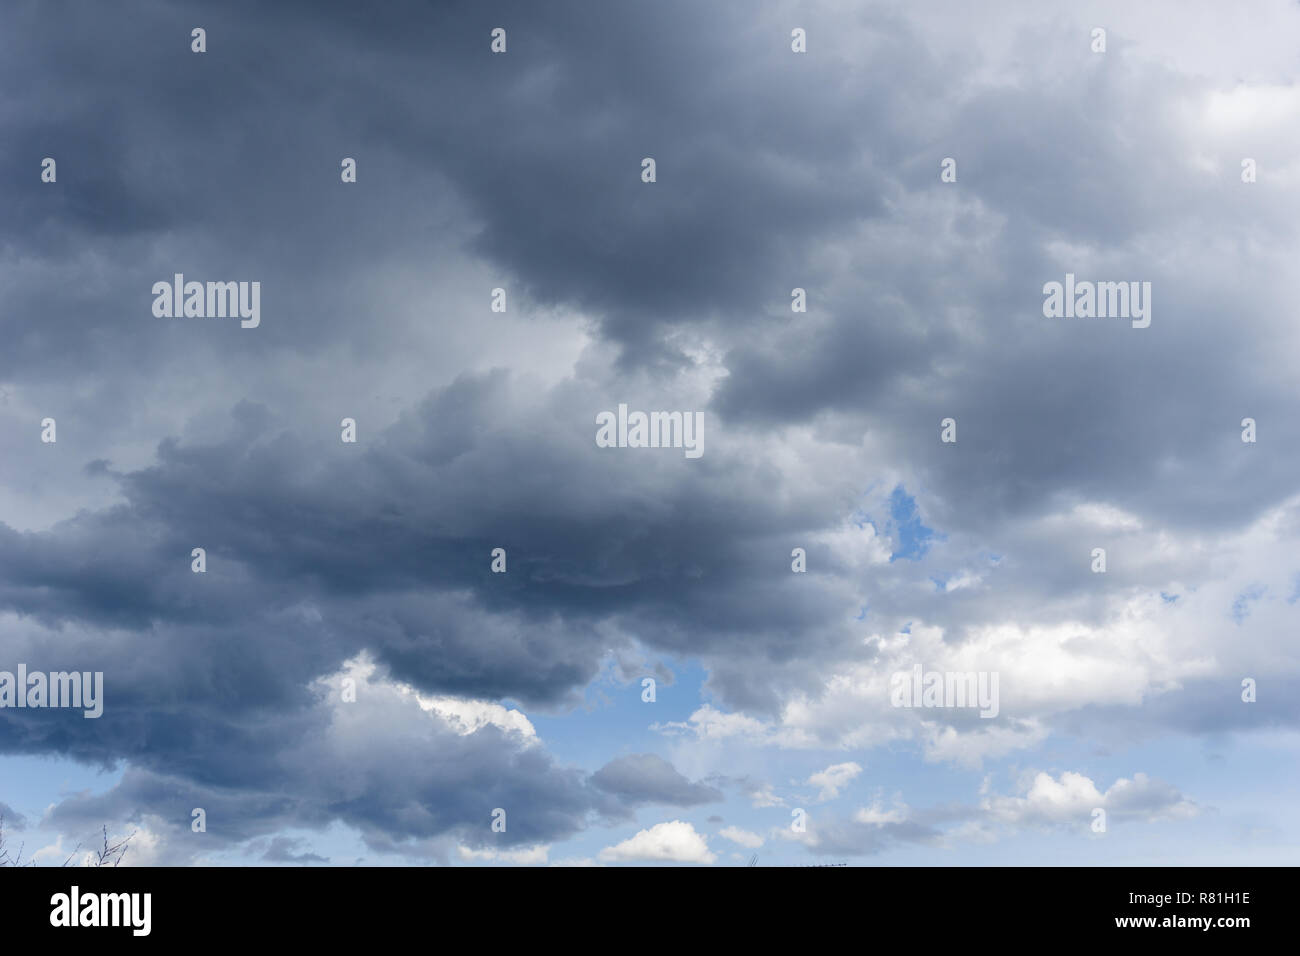 Close-up of a Big dramatic Storm Clouds. - Stock Image